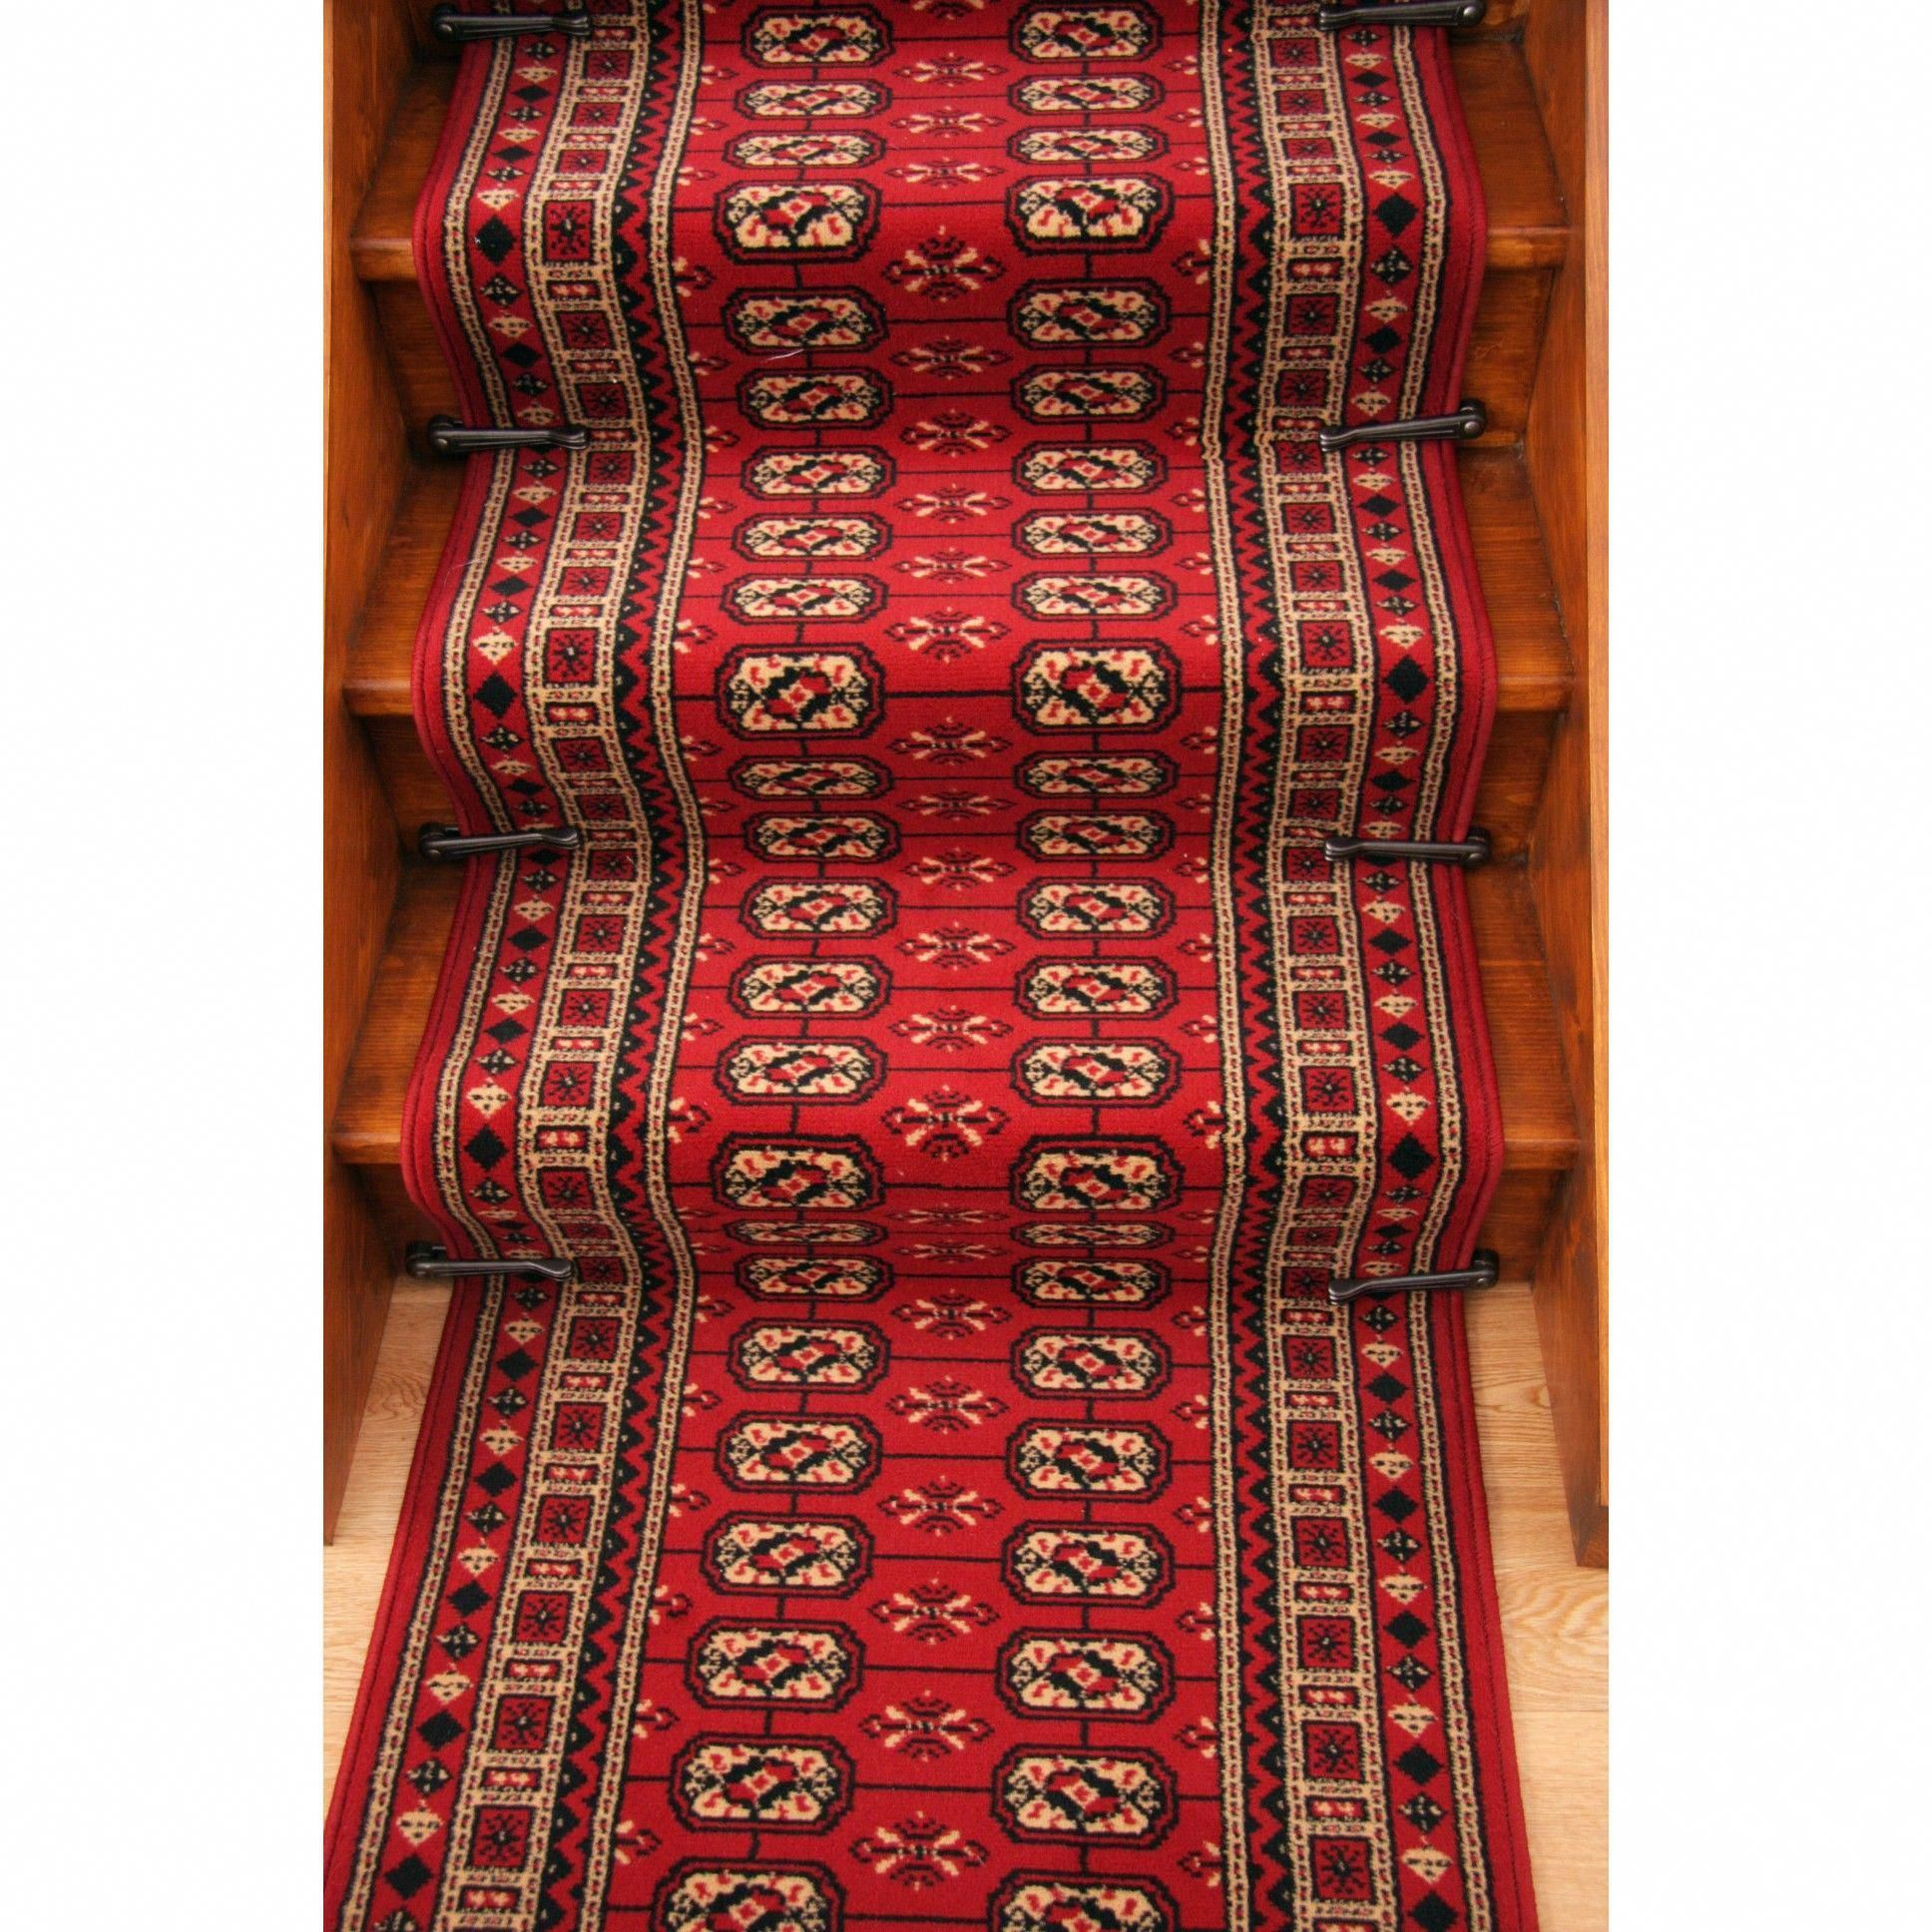 Carpet Runners By The Foot Lowes Carpetrunnerslaunceston | Hallway Carpet Runners By The Foot